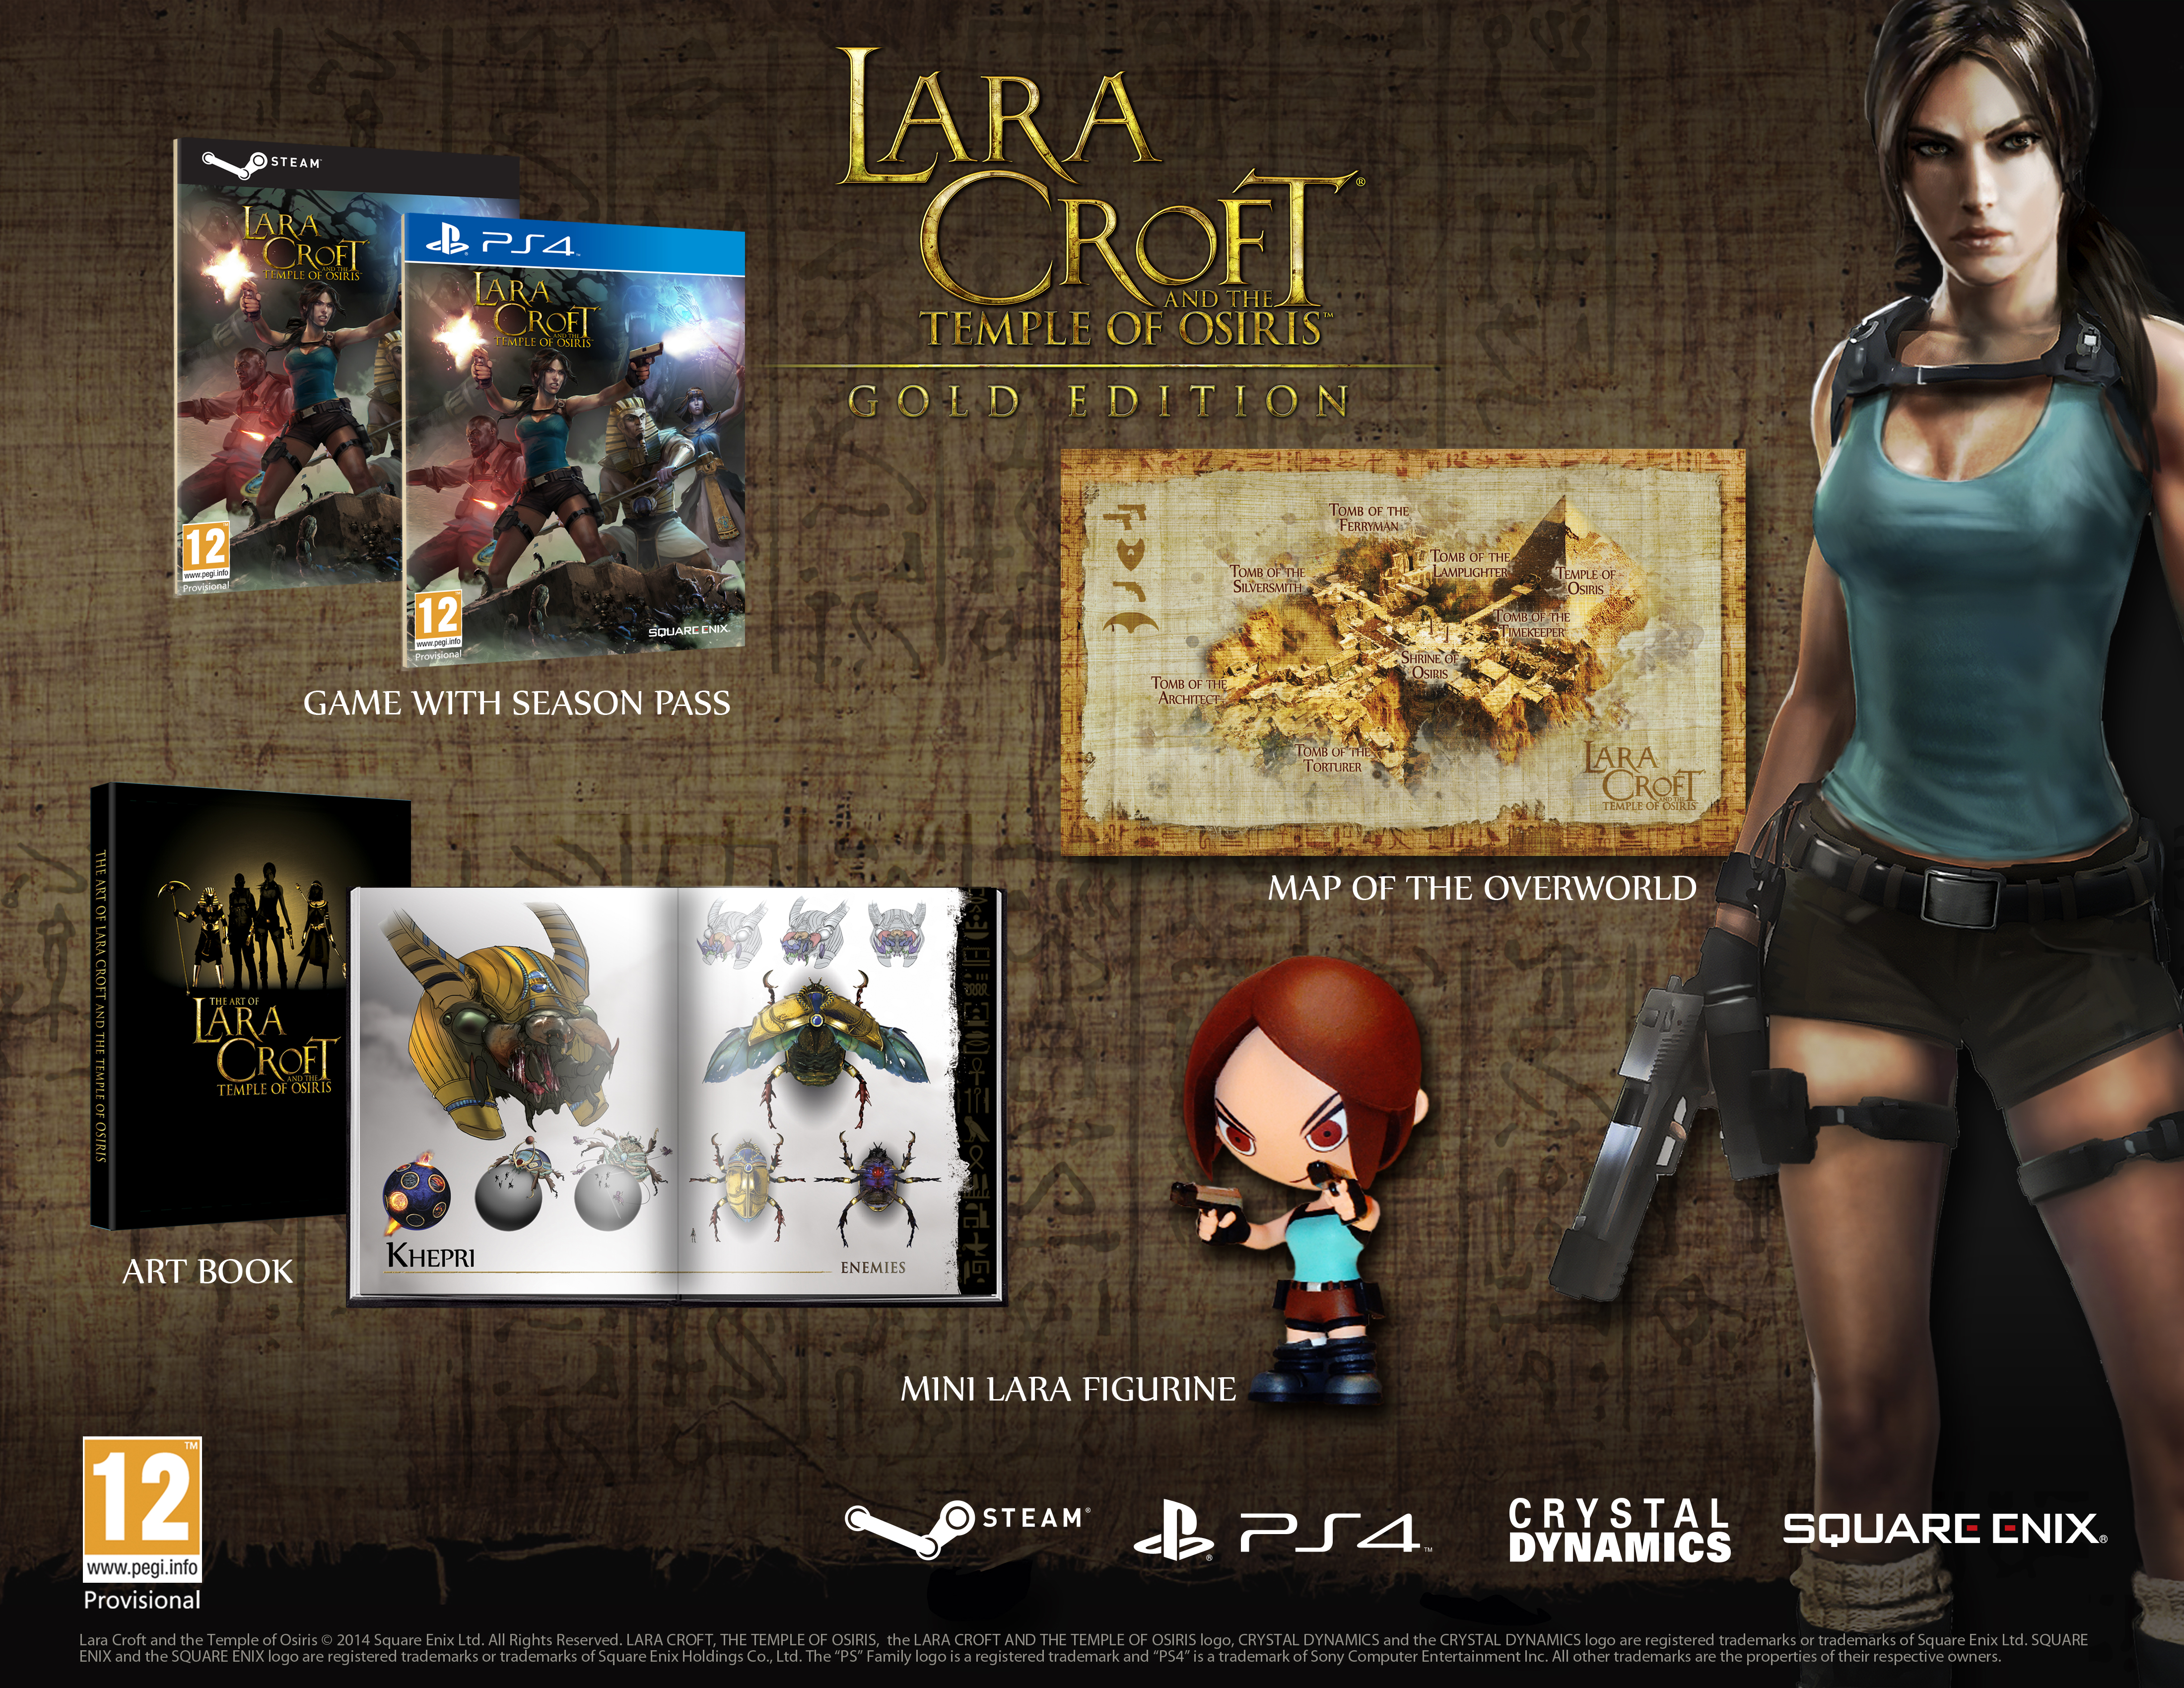 Get all your Lara Croft and The Temple of Osiris pre-order and Season Pass details here